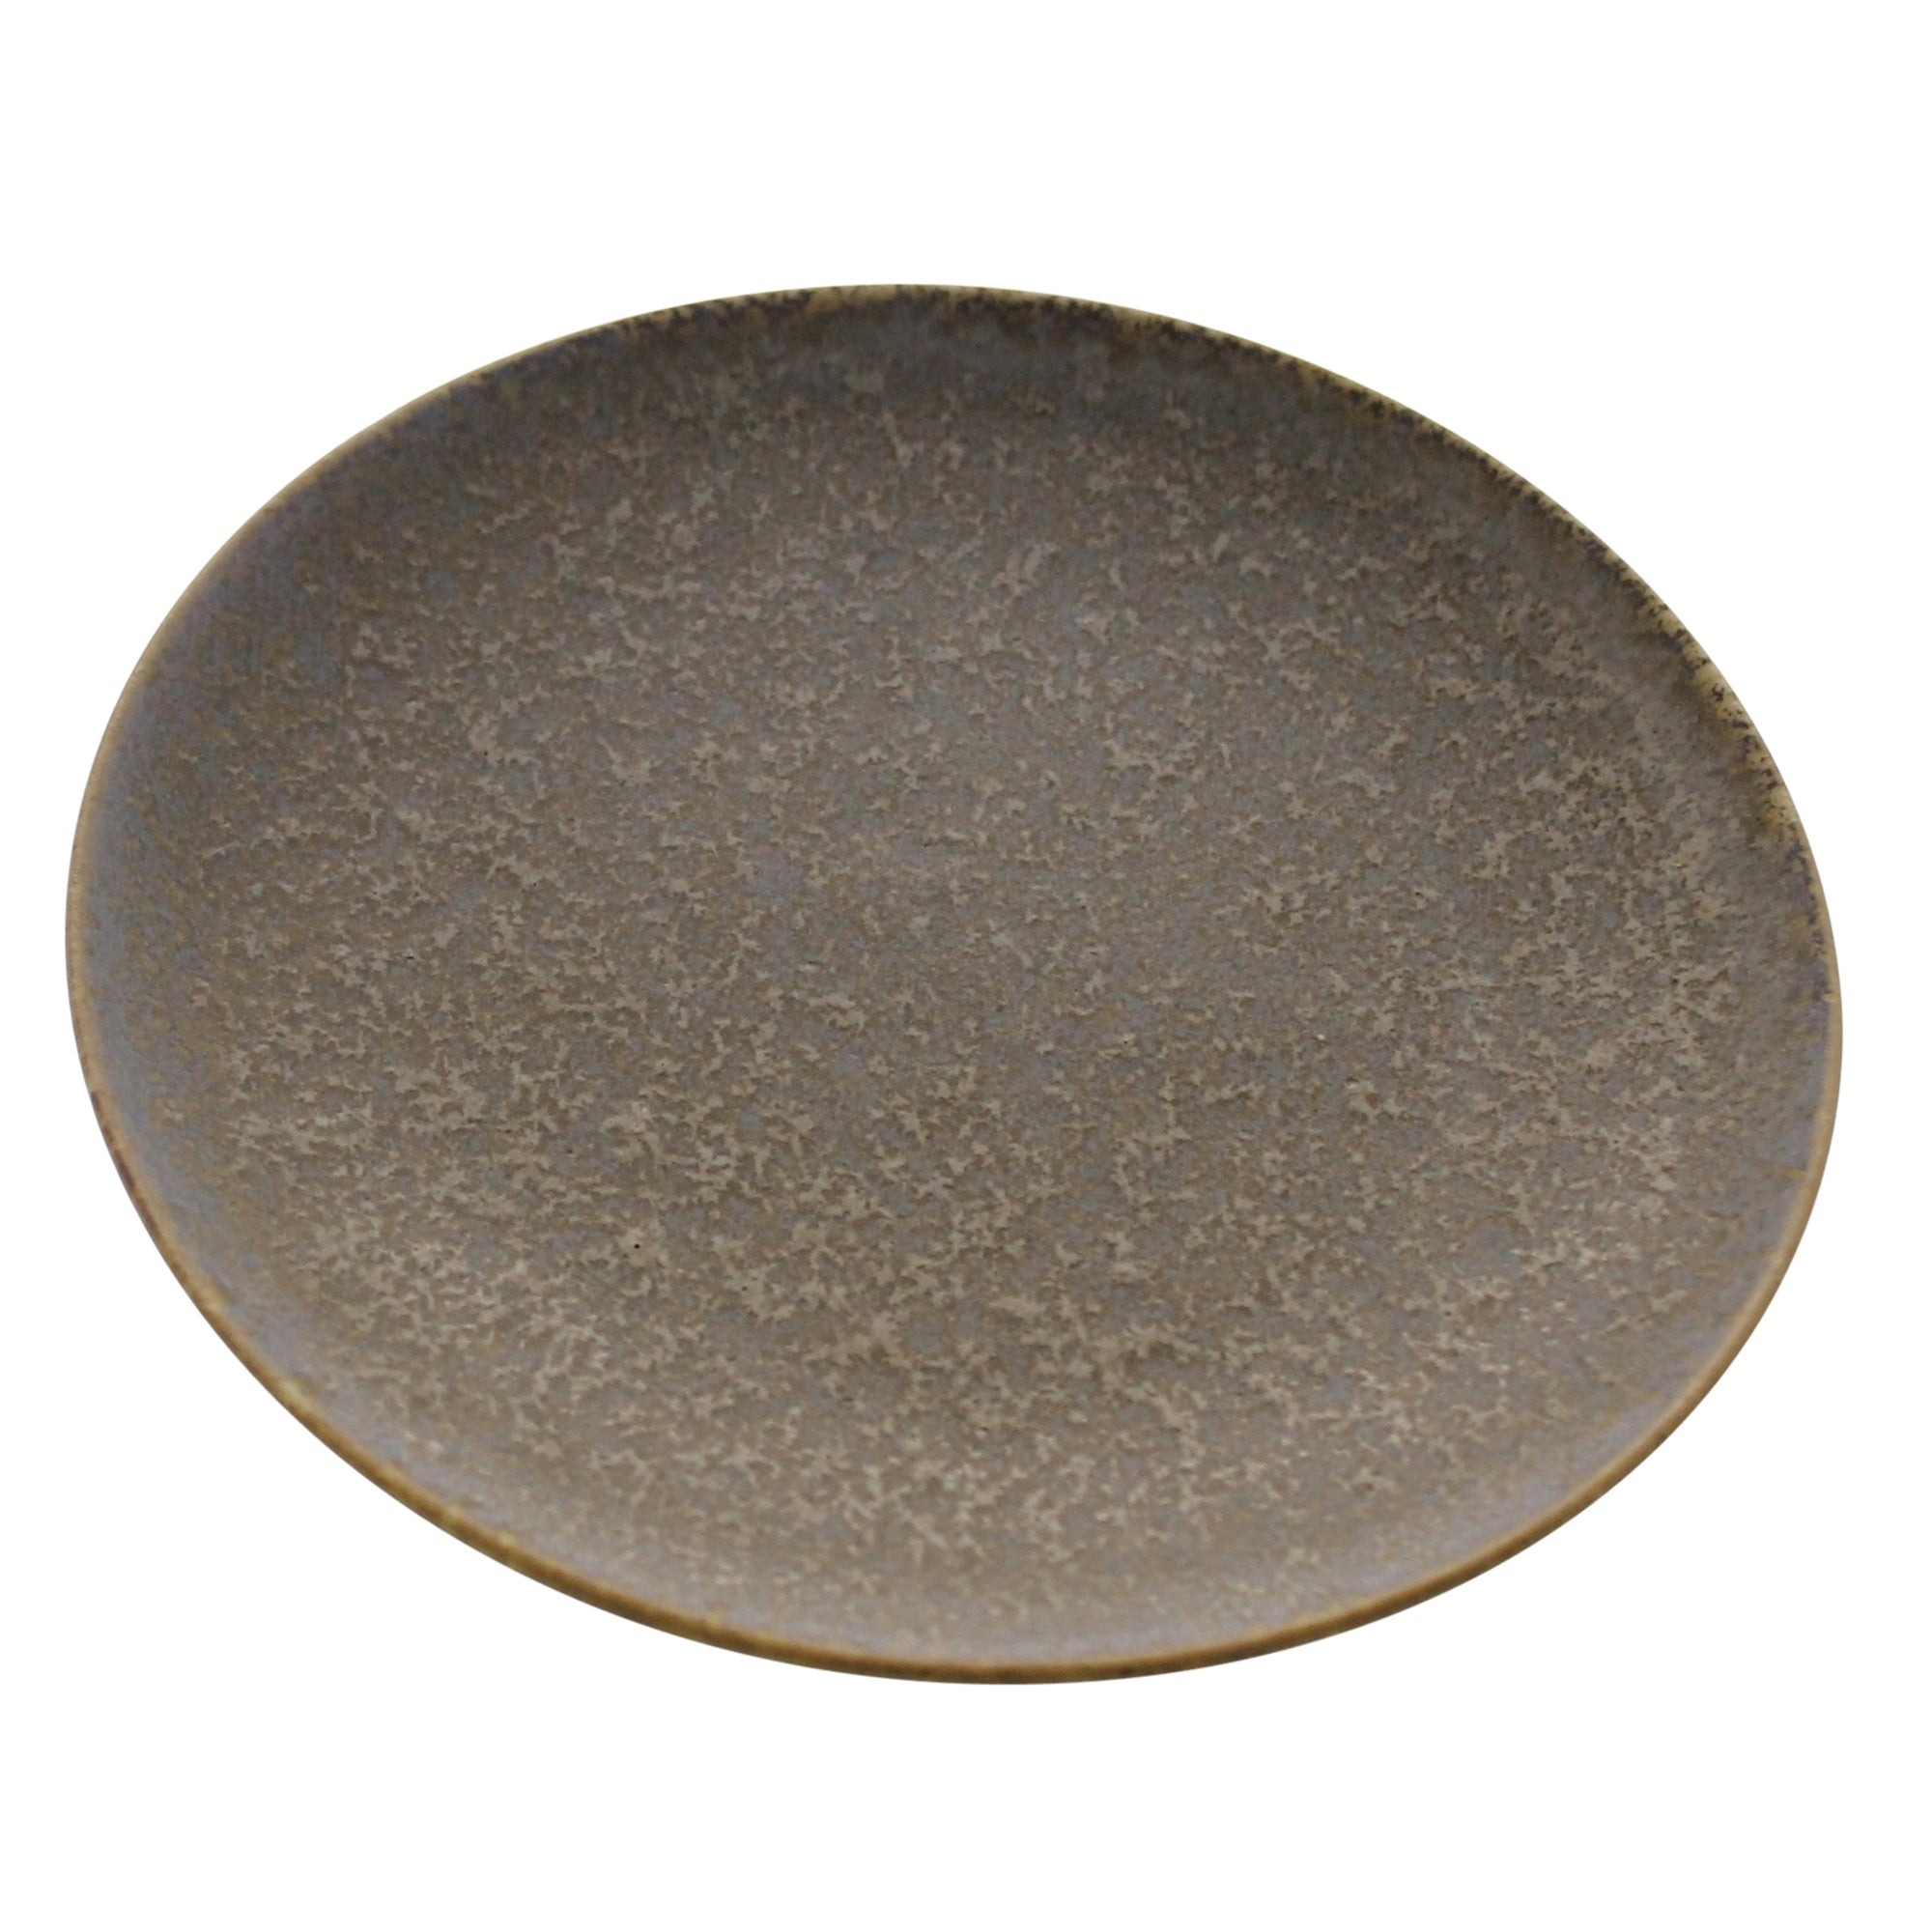 7138-0 - Tiburon Plate - Ceramic - Light Grey Glaze by HomArt